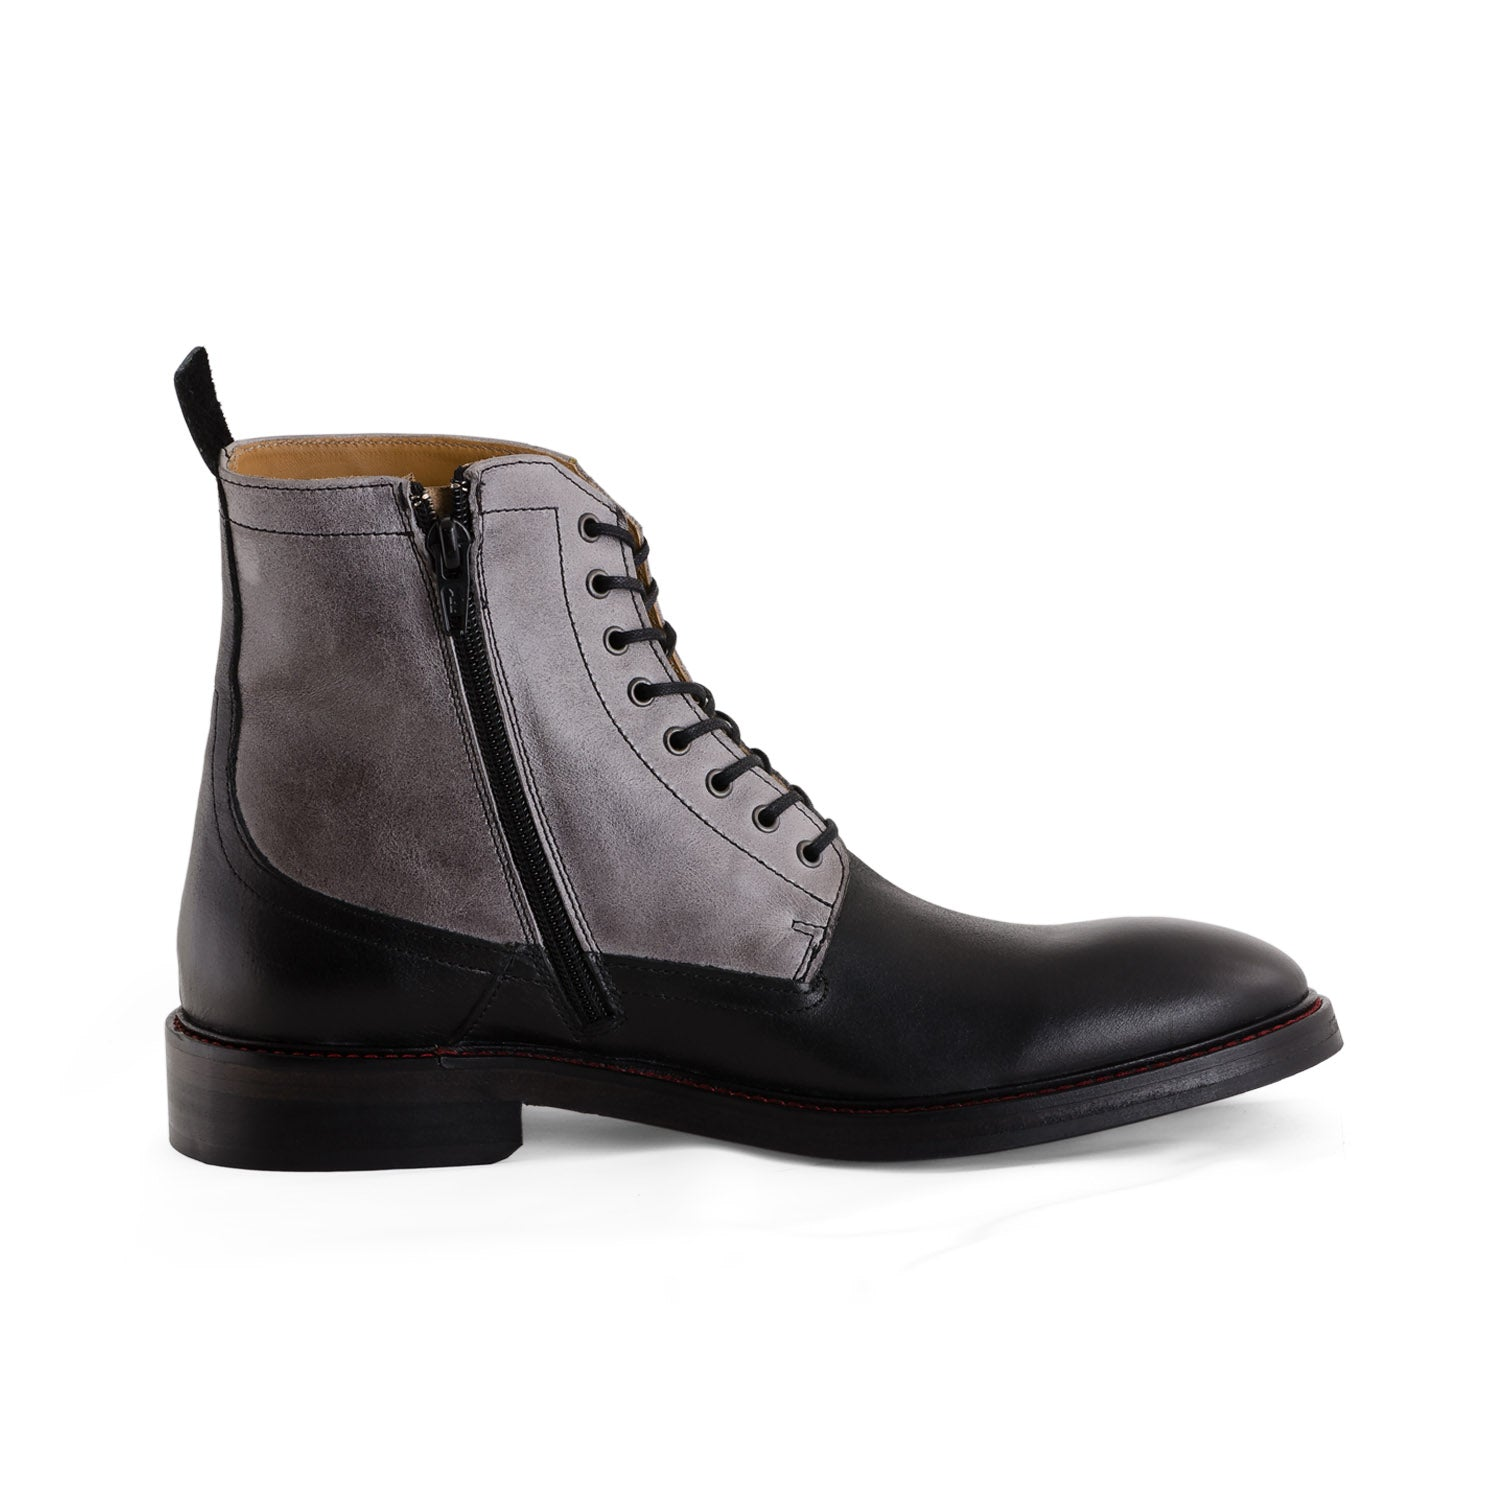 The Limited-Edition Dress Boot (3 color options) - NiK Kacy